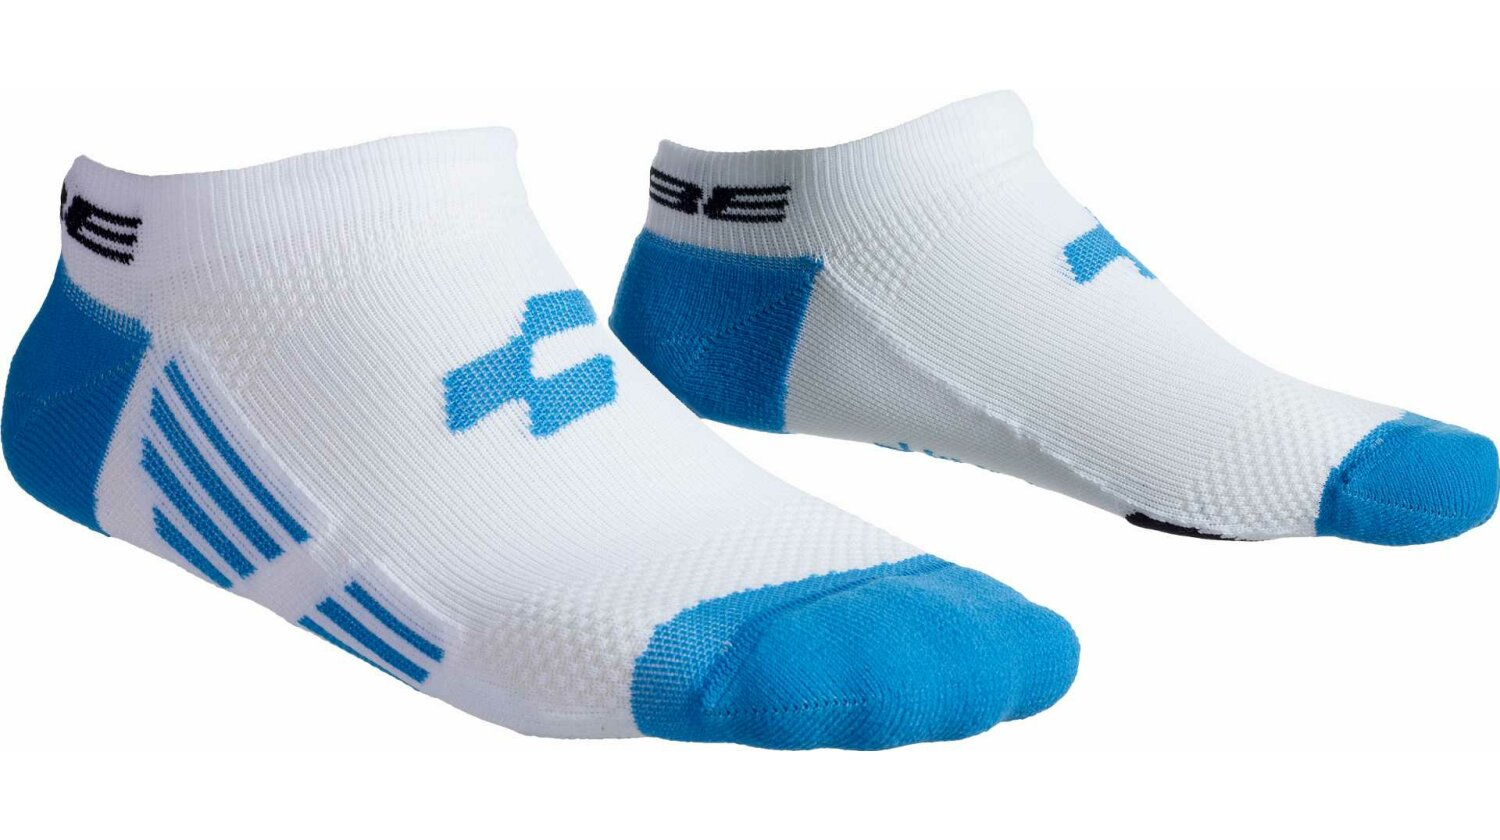 Cube Socke Air Cut Teamline 36-39